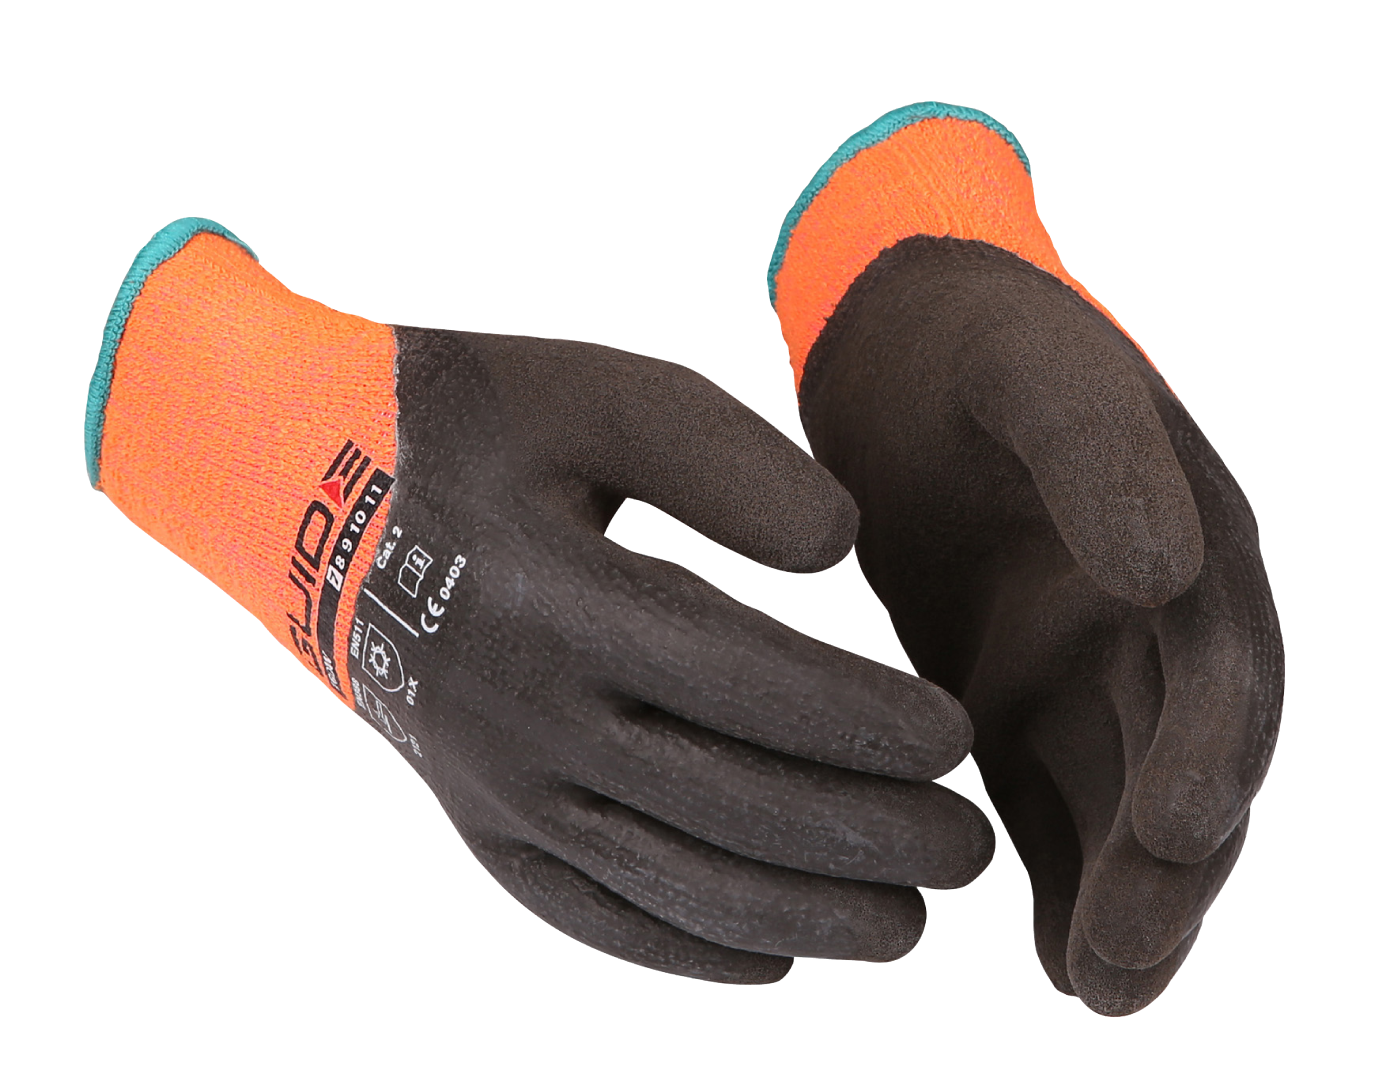 Warm Lined Glove GUIDE 160W